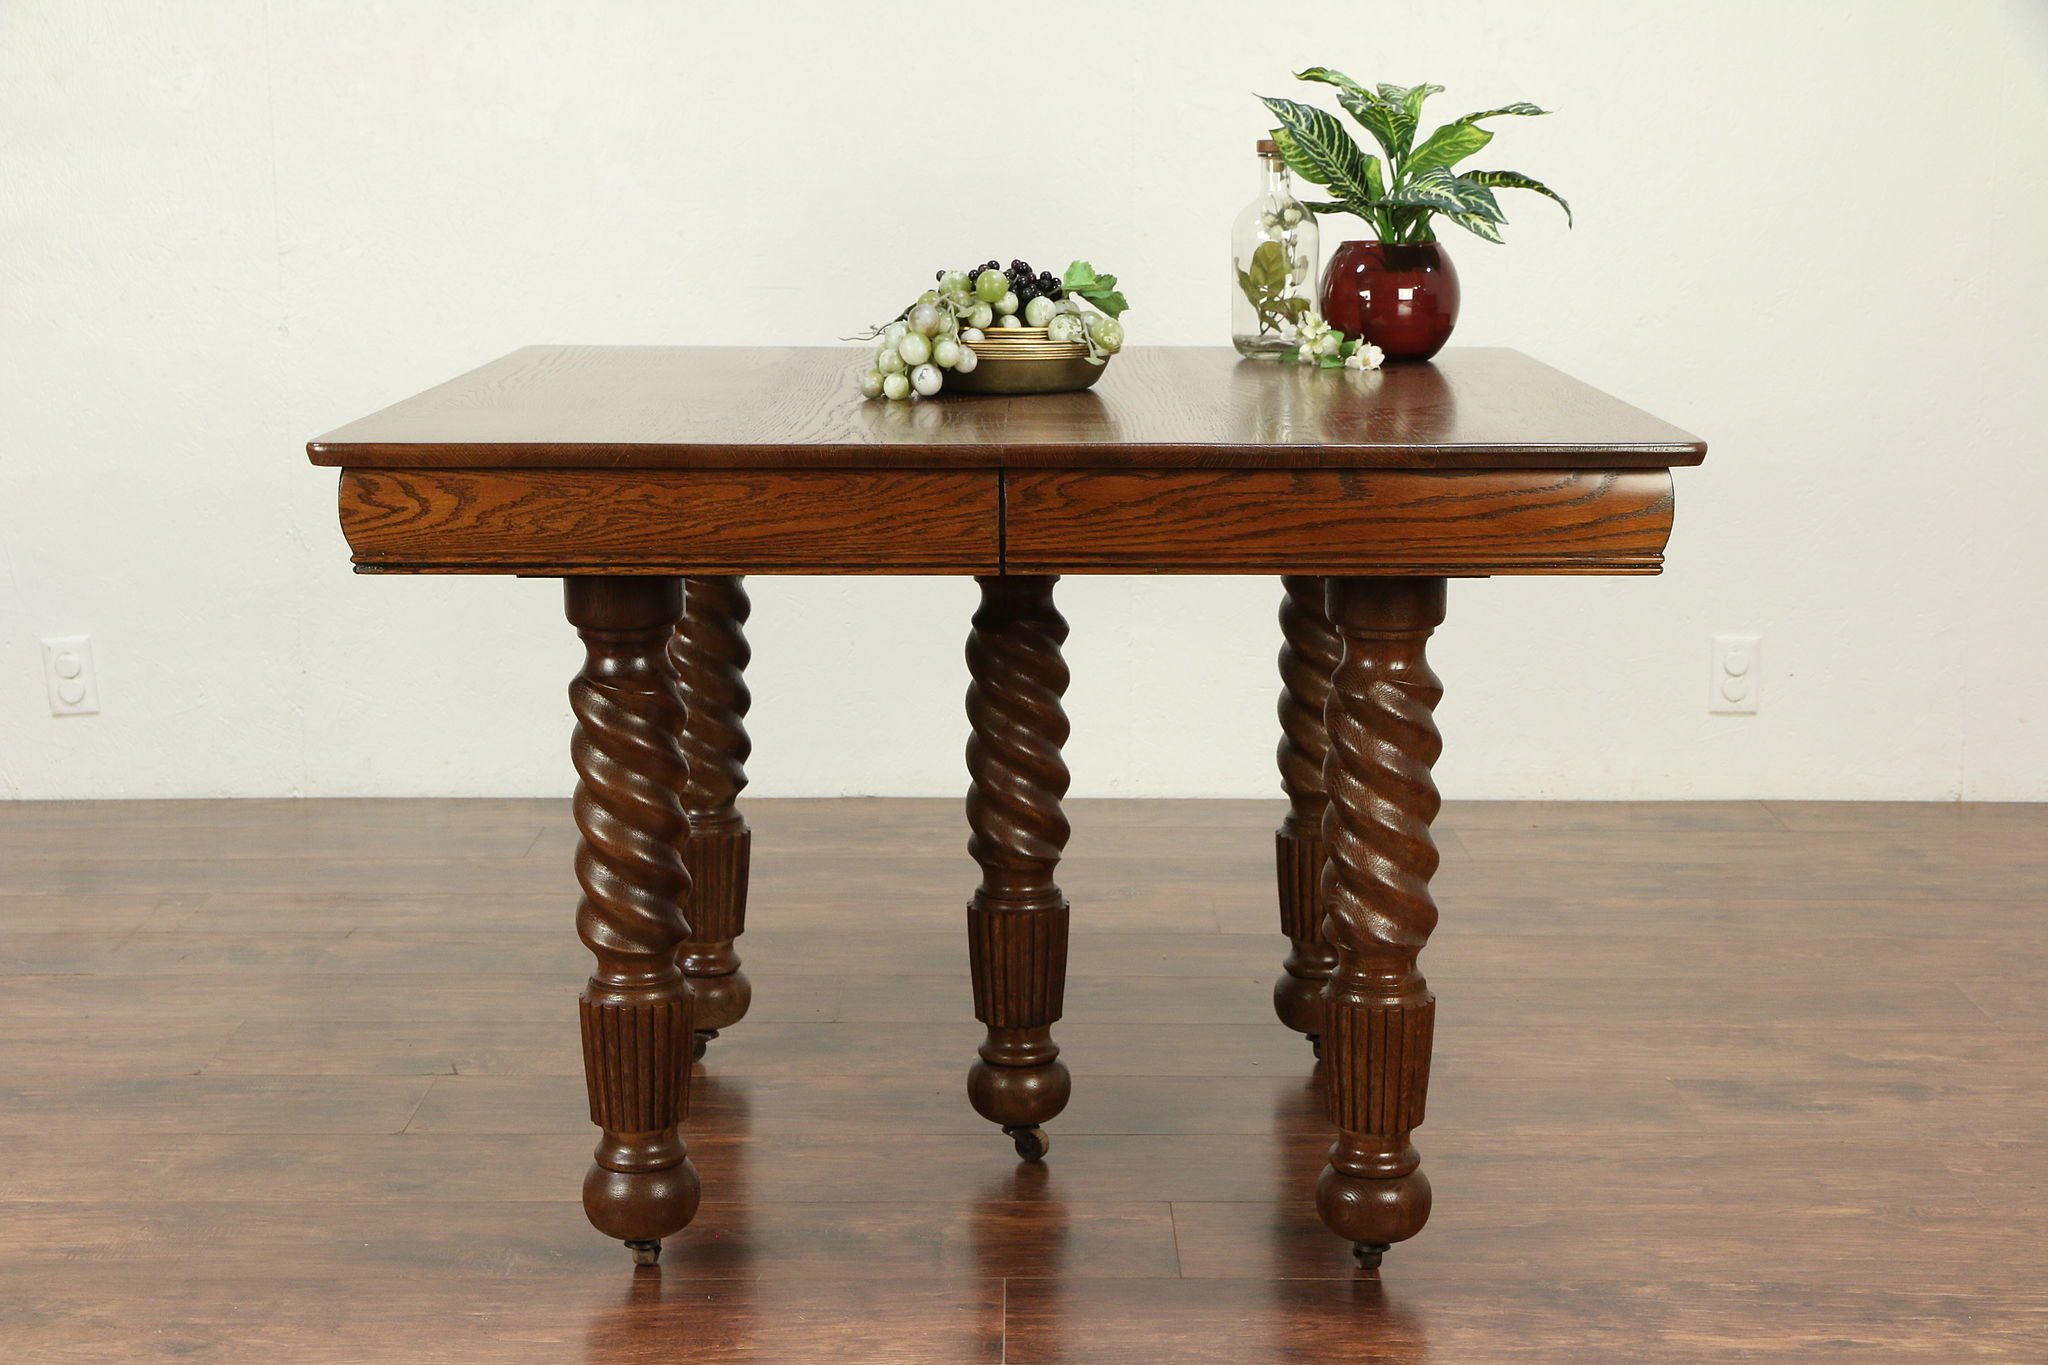 Oak Antique Victorian Square Dining Table, 2 Leaves, Spiral Legs #29271